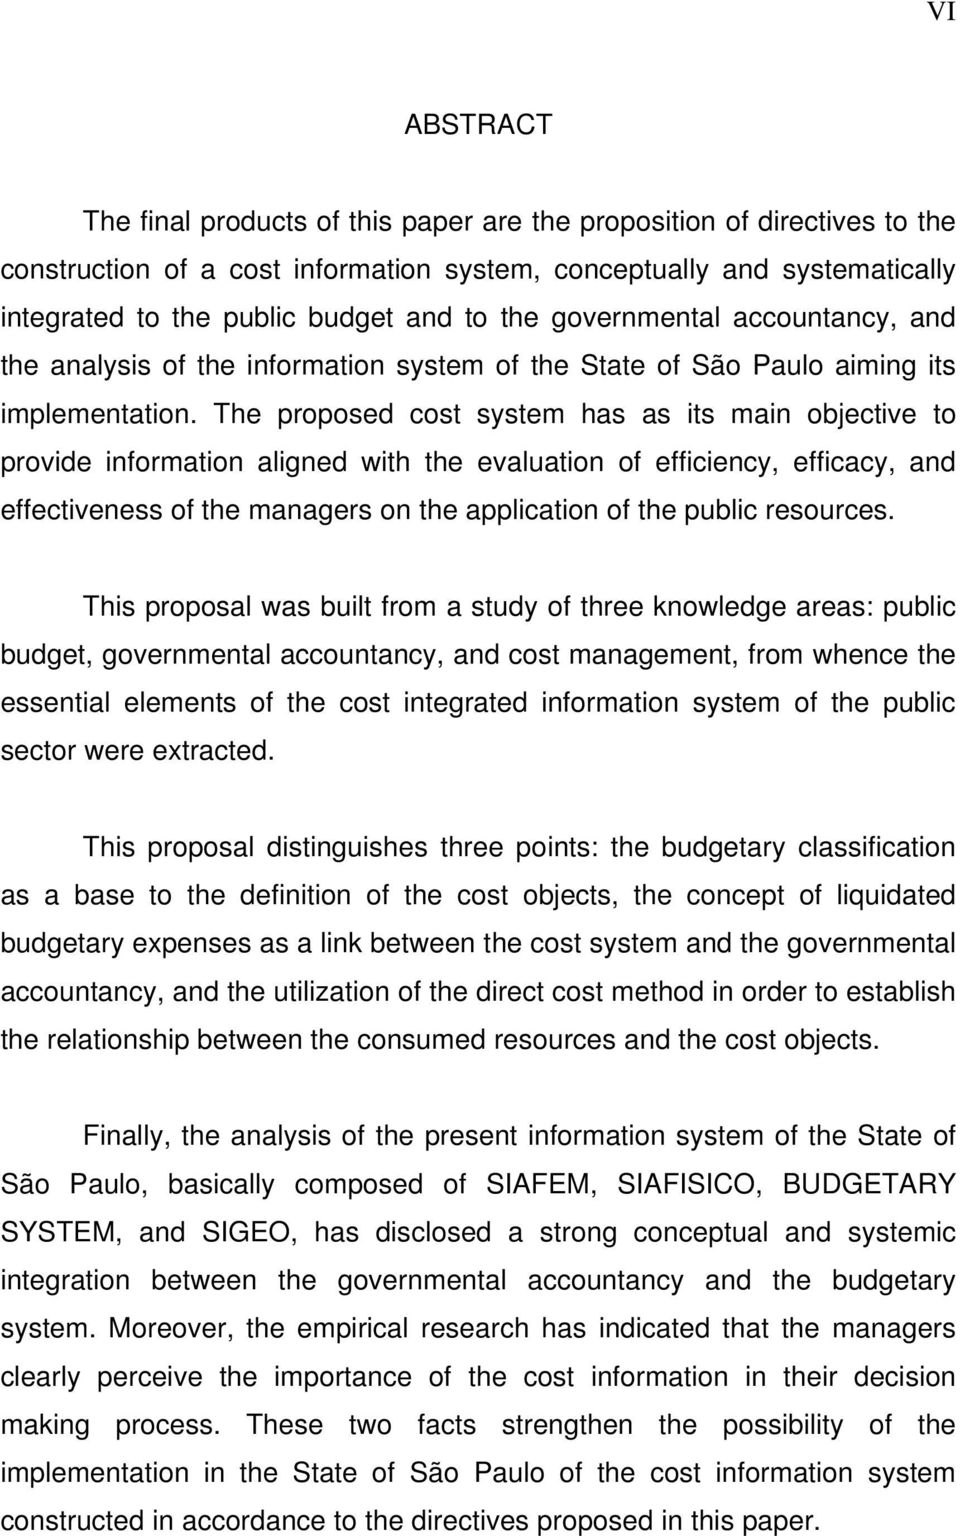 The proposed cost system has as its main objective to provide information aligned with the evaluation of efficiency, efficacy, and effectiveness of the managers on the application of the public